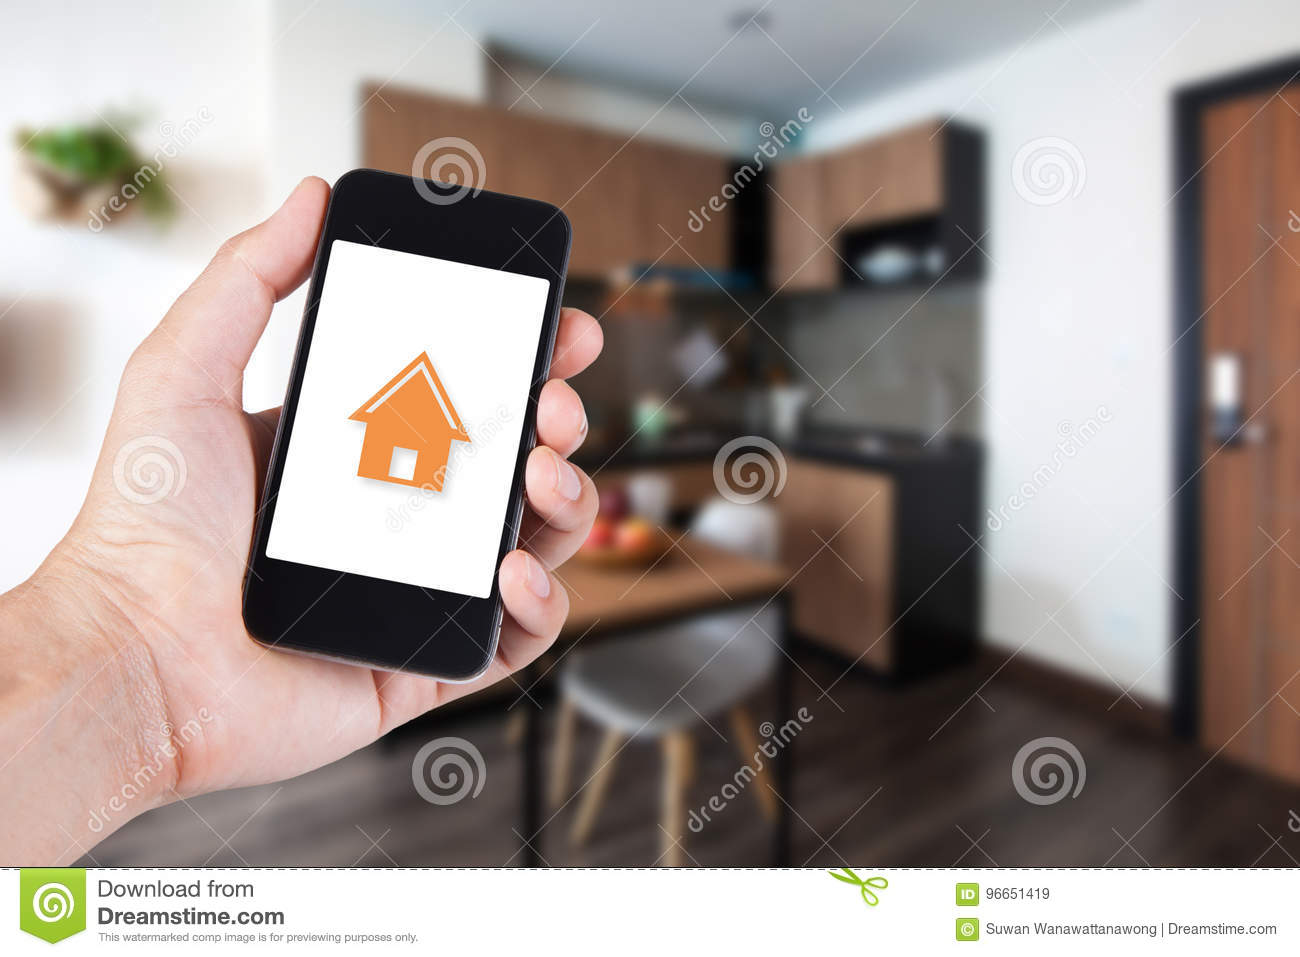 Hand using smartphone by app smart home on mobile